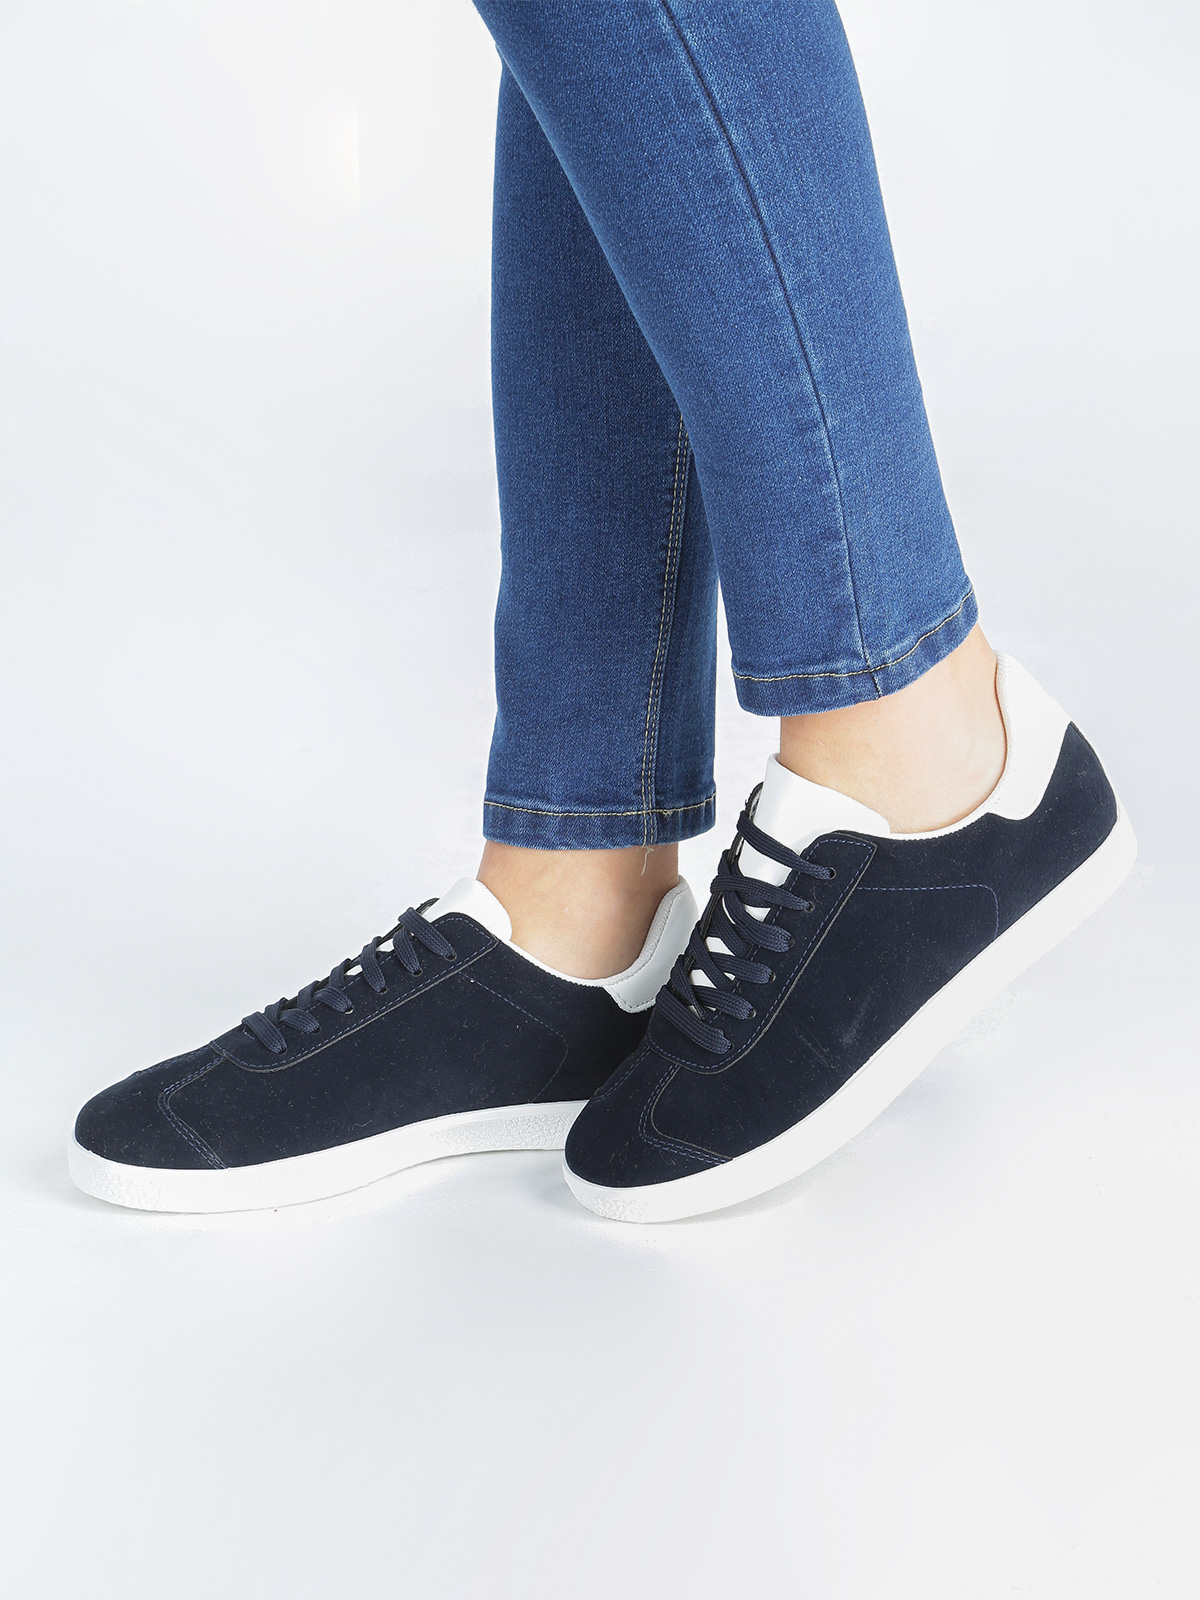 SOLADA Sneakers Lace-up Flat